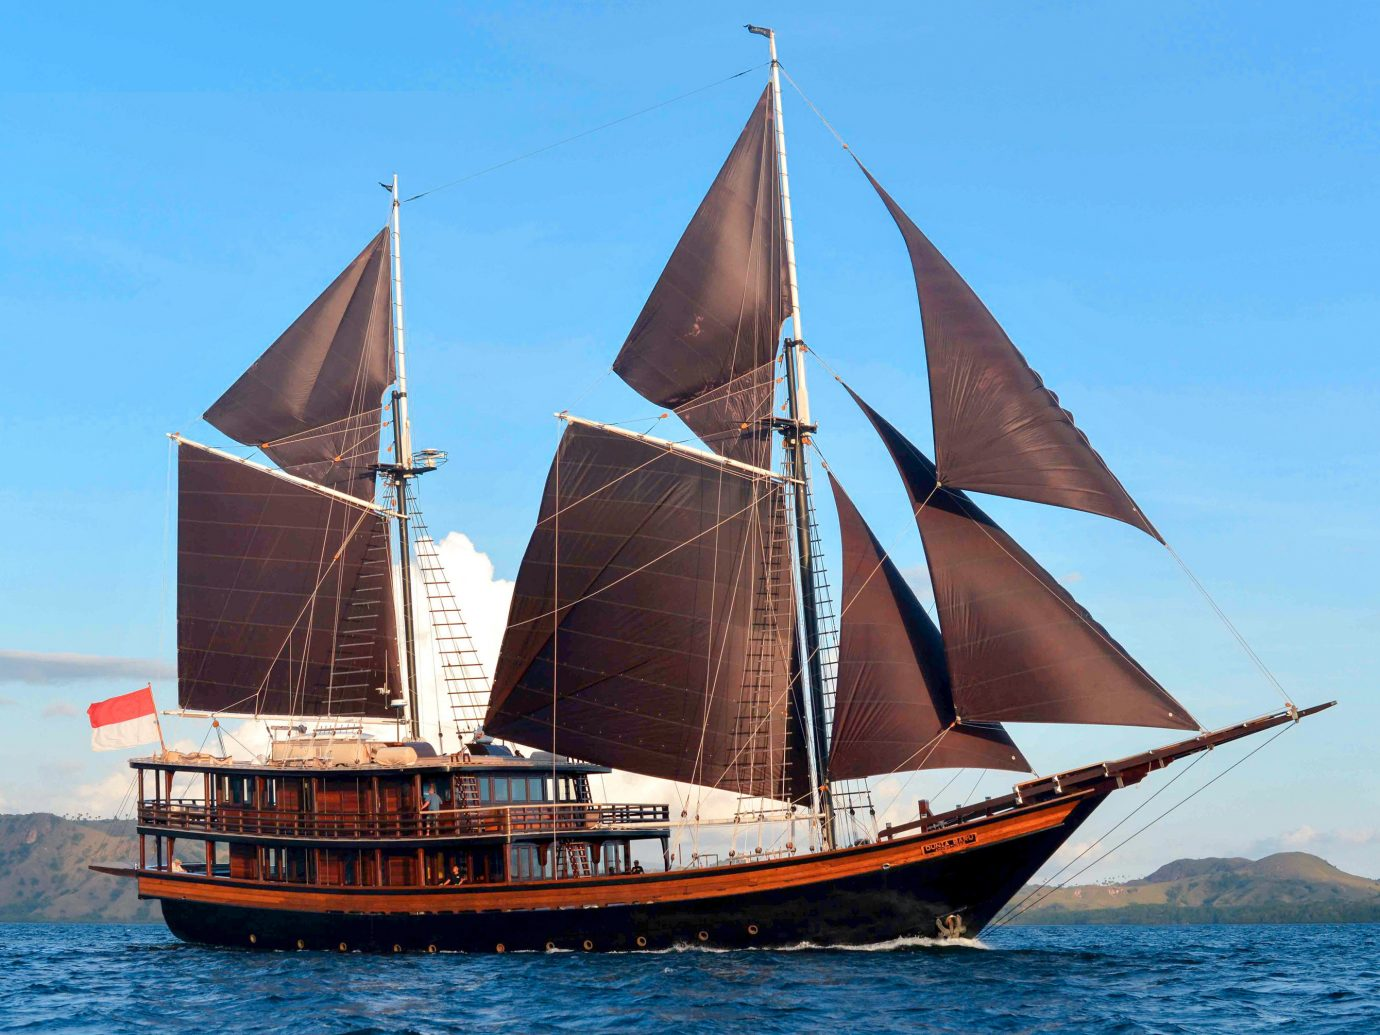 Luxury Travel Trip Ideas sailing ship tall ship water transportation brigantine ship caravel barquentine galeas schooner watercraft brig barque baltimore clipper sloop of war ship of the line sailboat carrack windjammer yawl Boat sail ship replica full rigged ship first rate manila galleon lugger training ship dhow cat ketch east indiaman sloop galleon galley fluyt flagship galiot skipjack sailing clipper